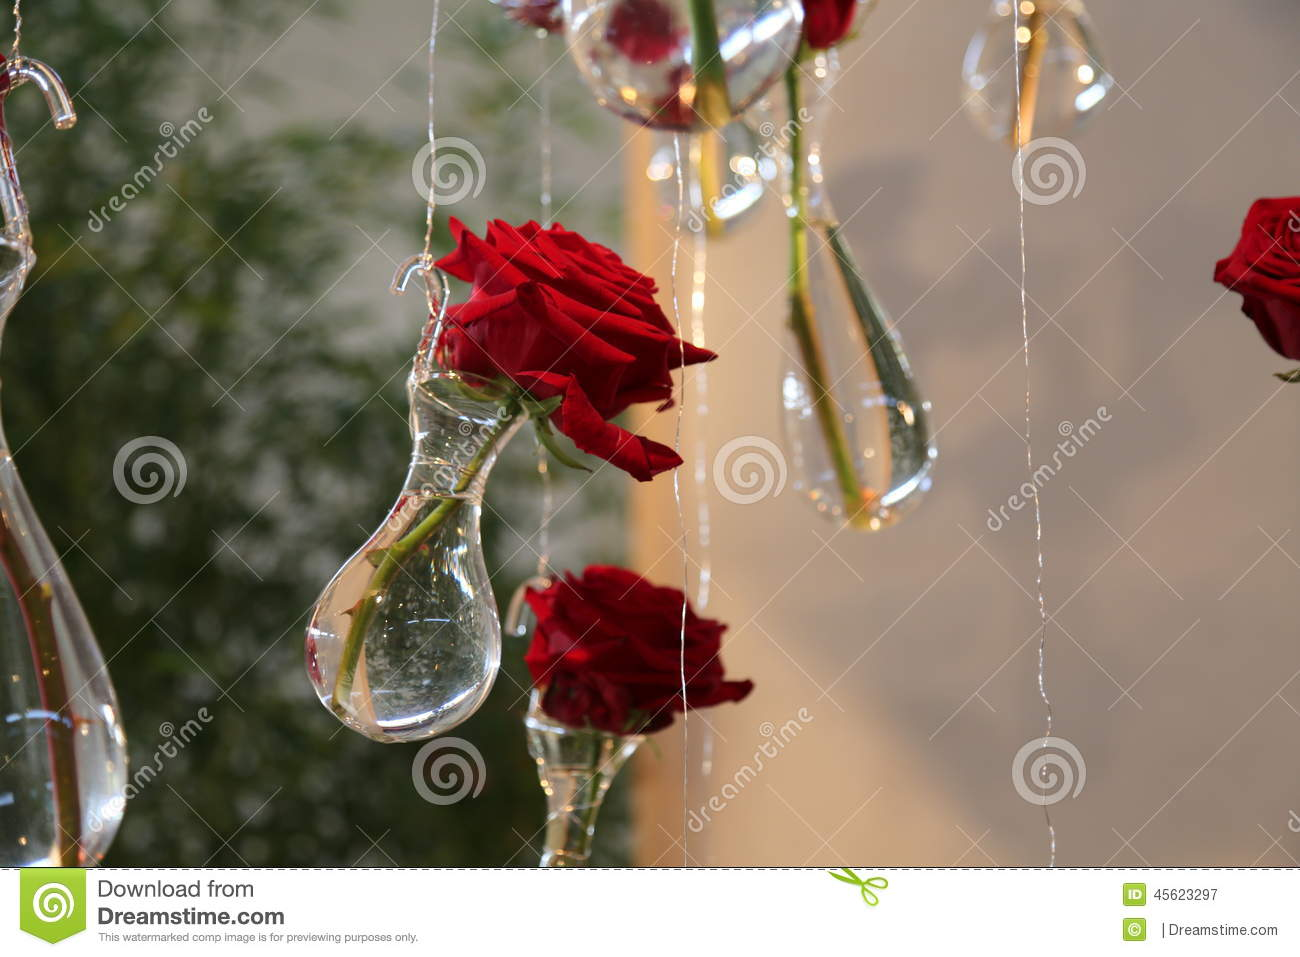 Rose flower glass beauty fragility dream love soaring red crystal ...